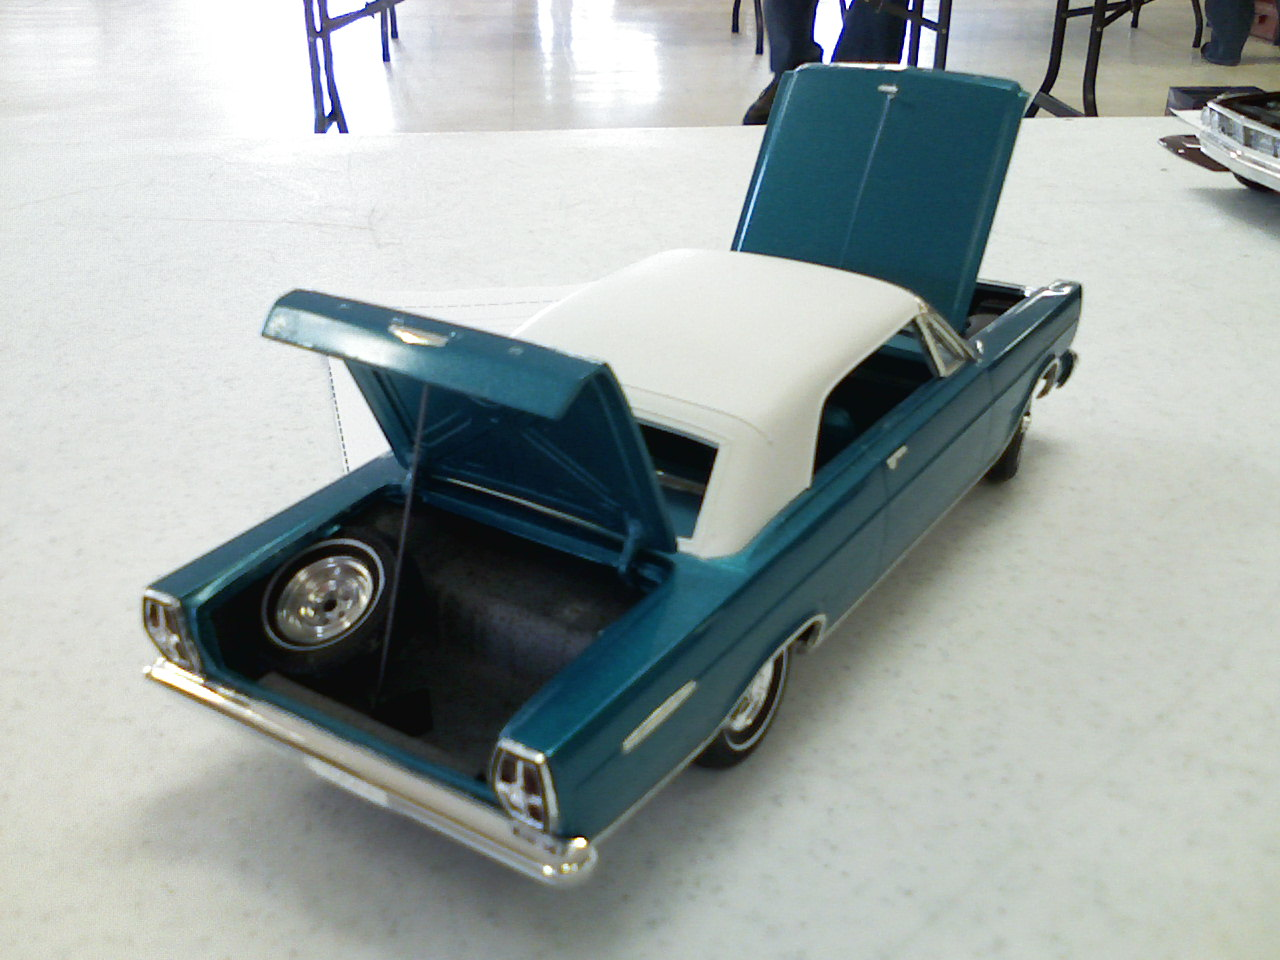 of 1965 Ford Galaxie model